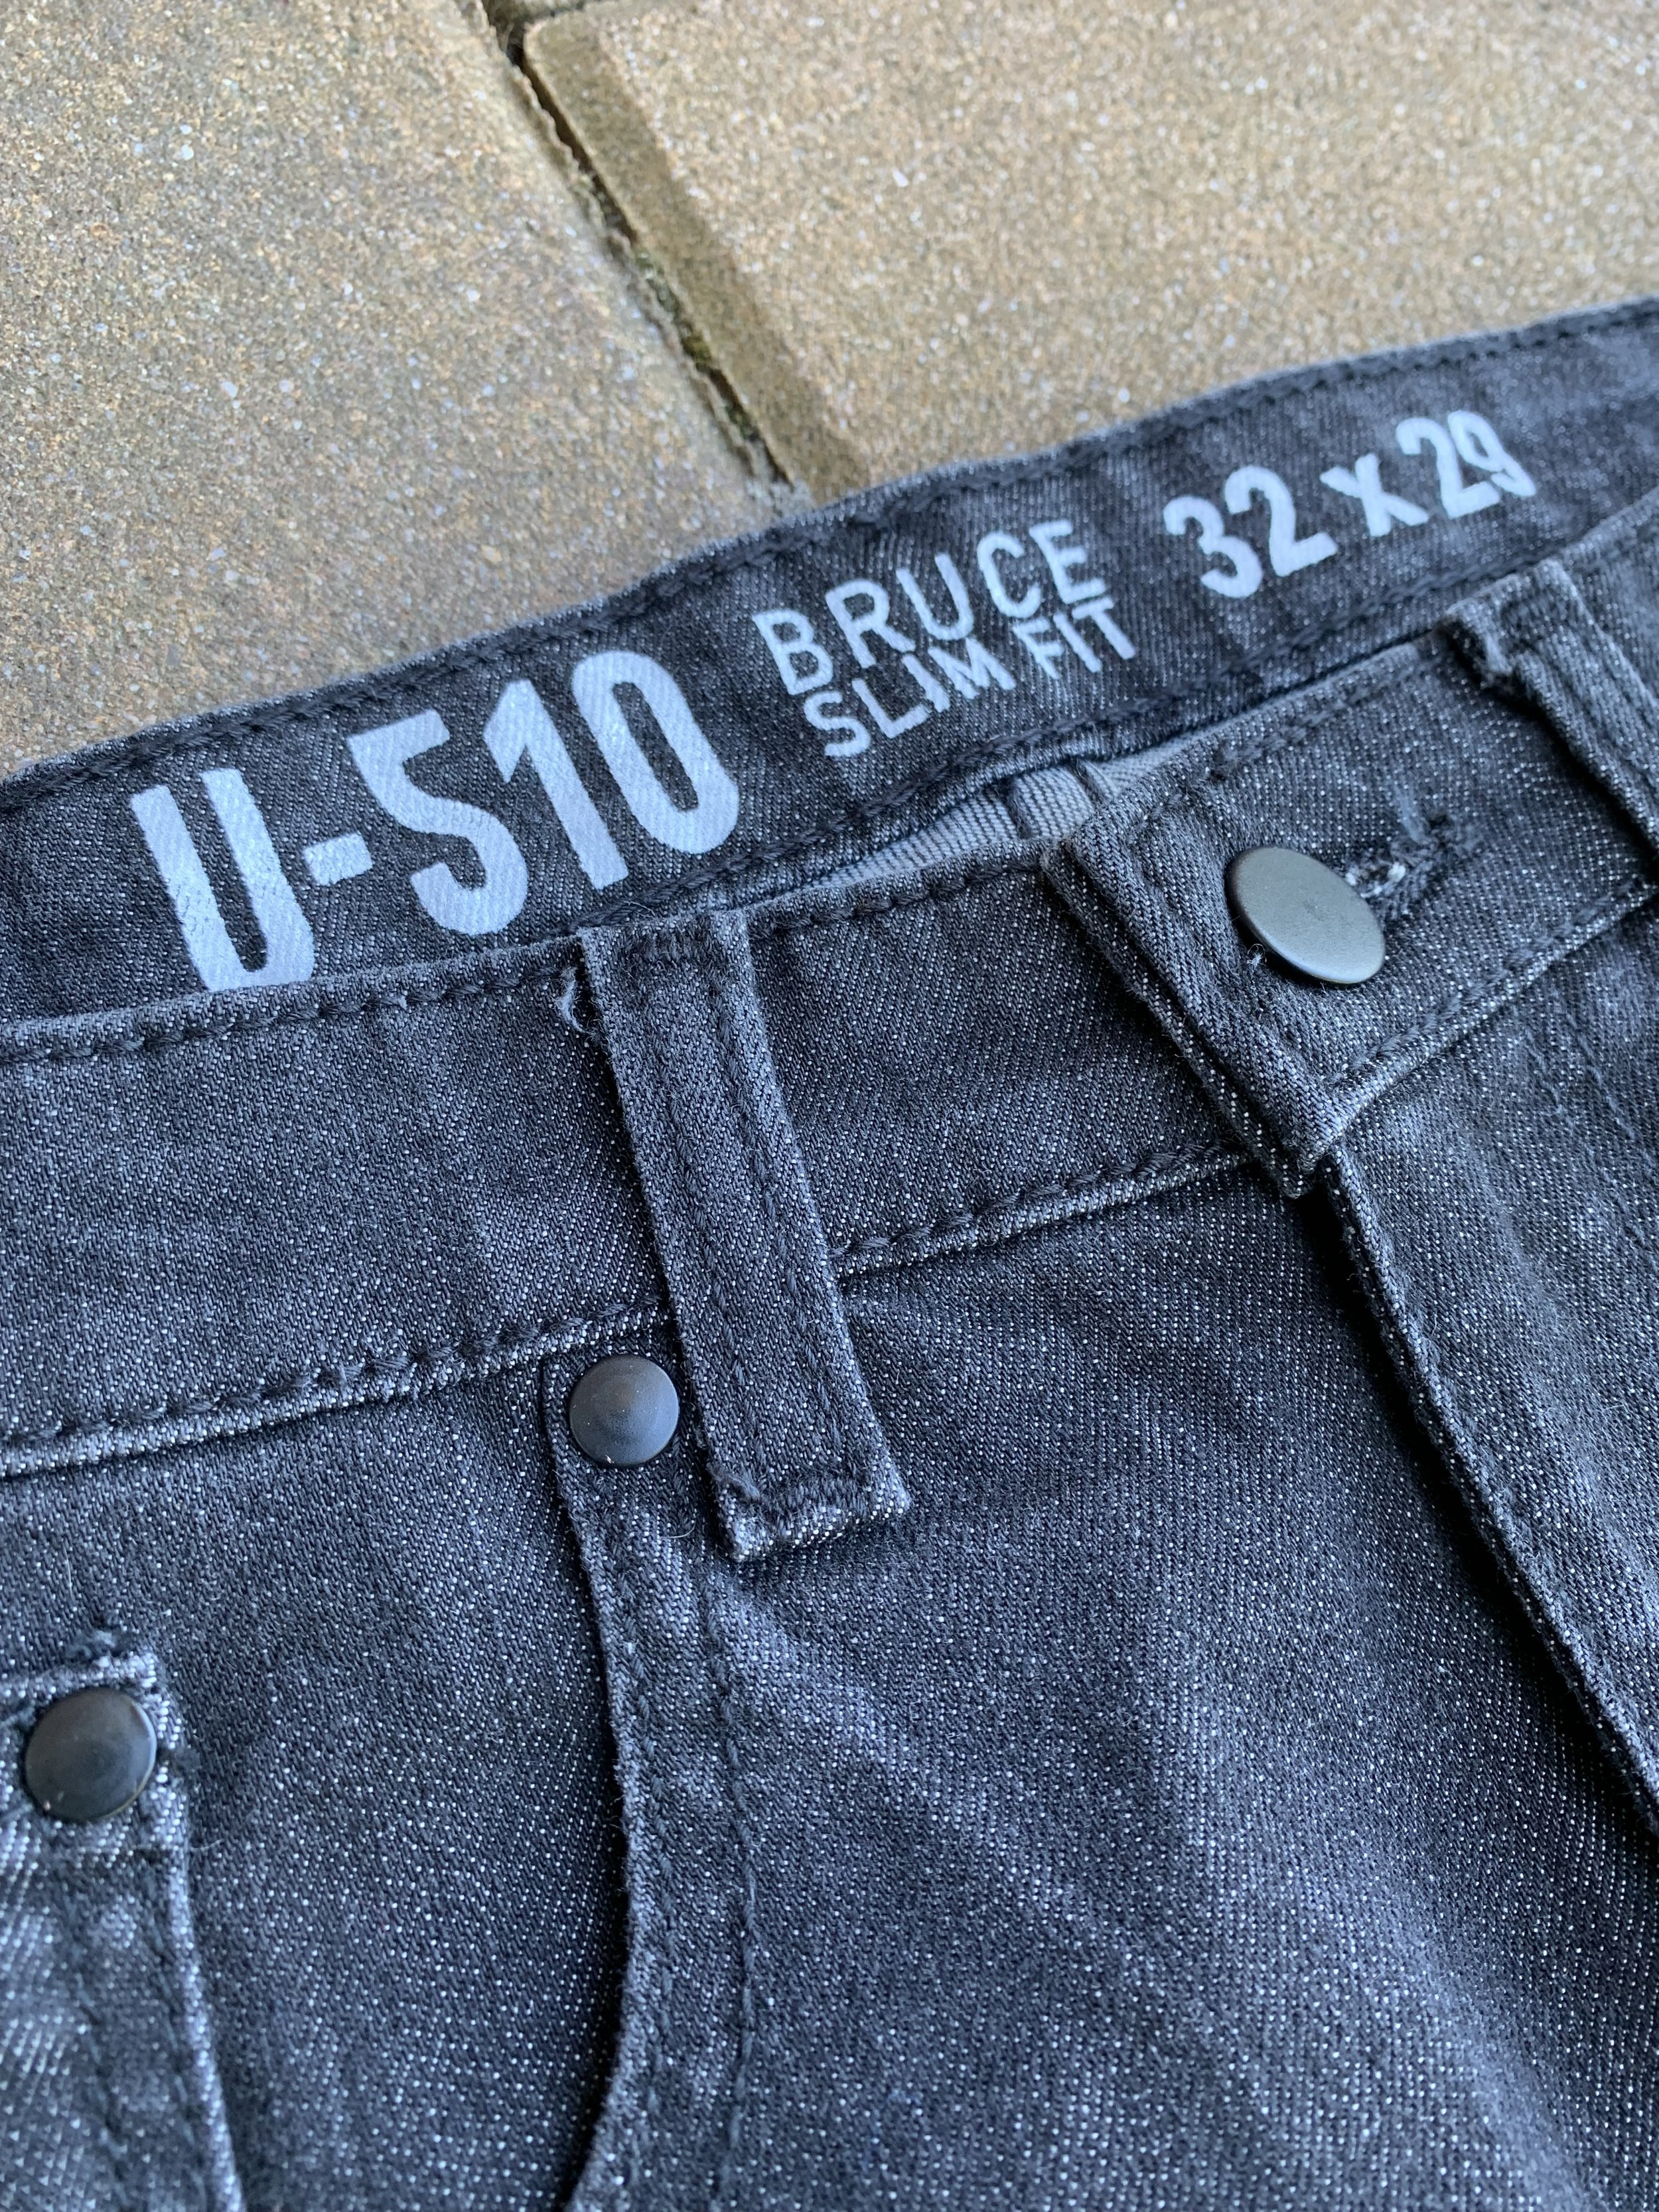 A look under the hood of the Bruce jean. Note the 29' inseam which makes me very happy  !